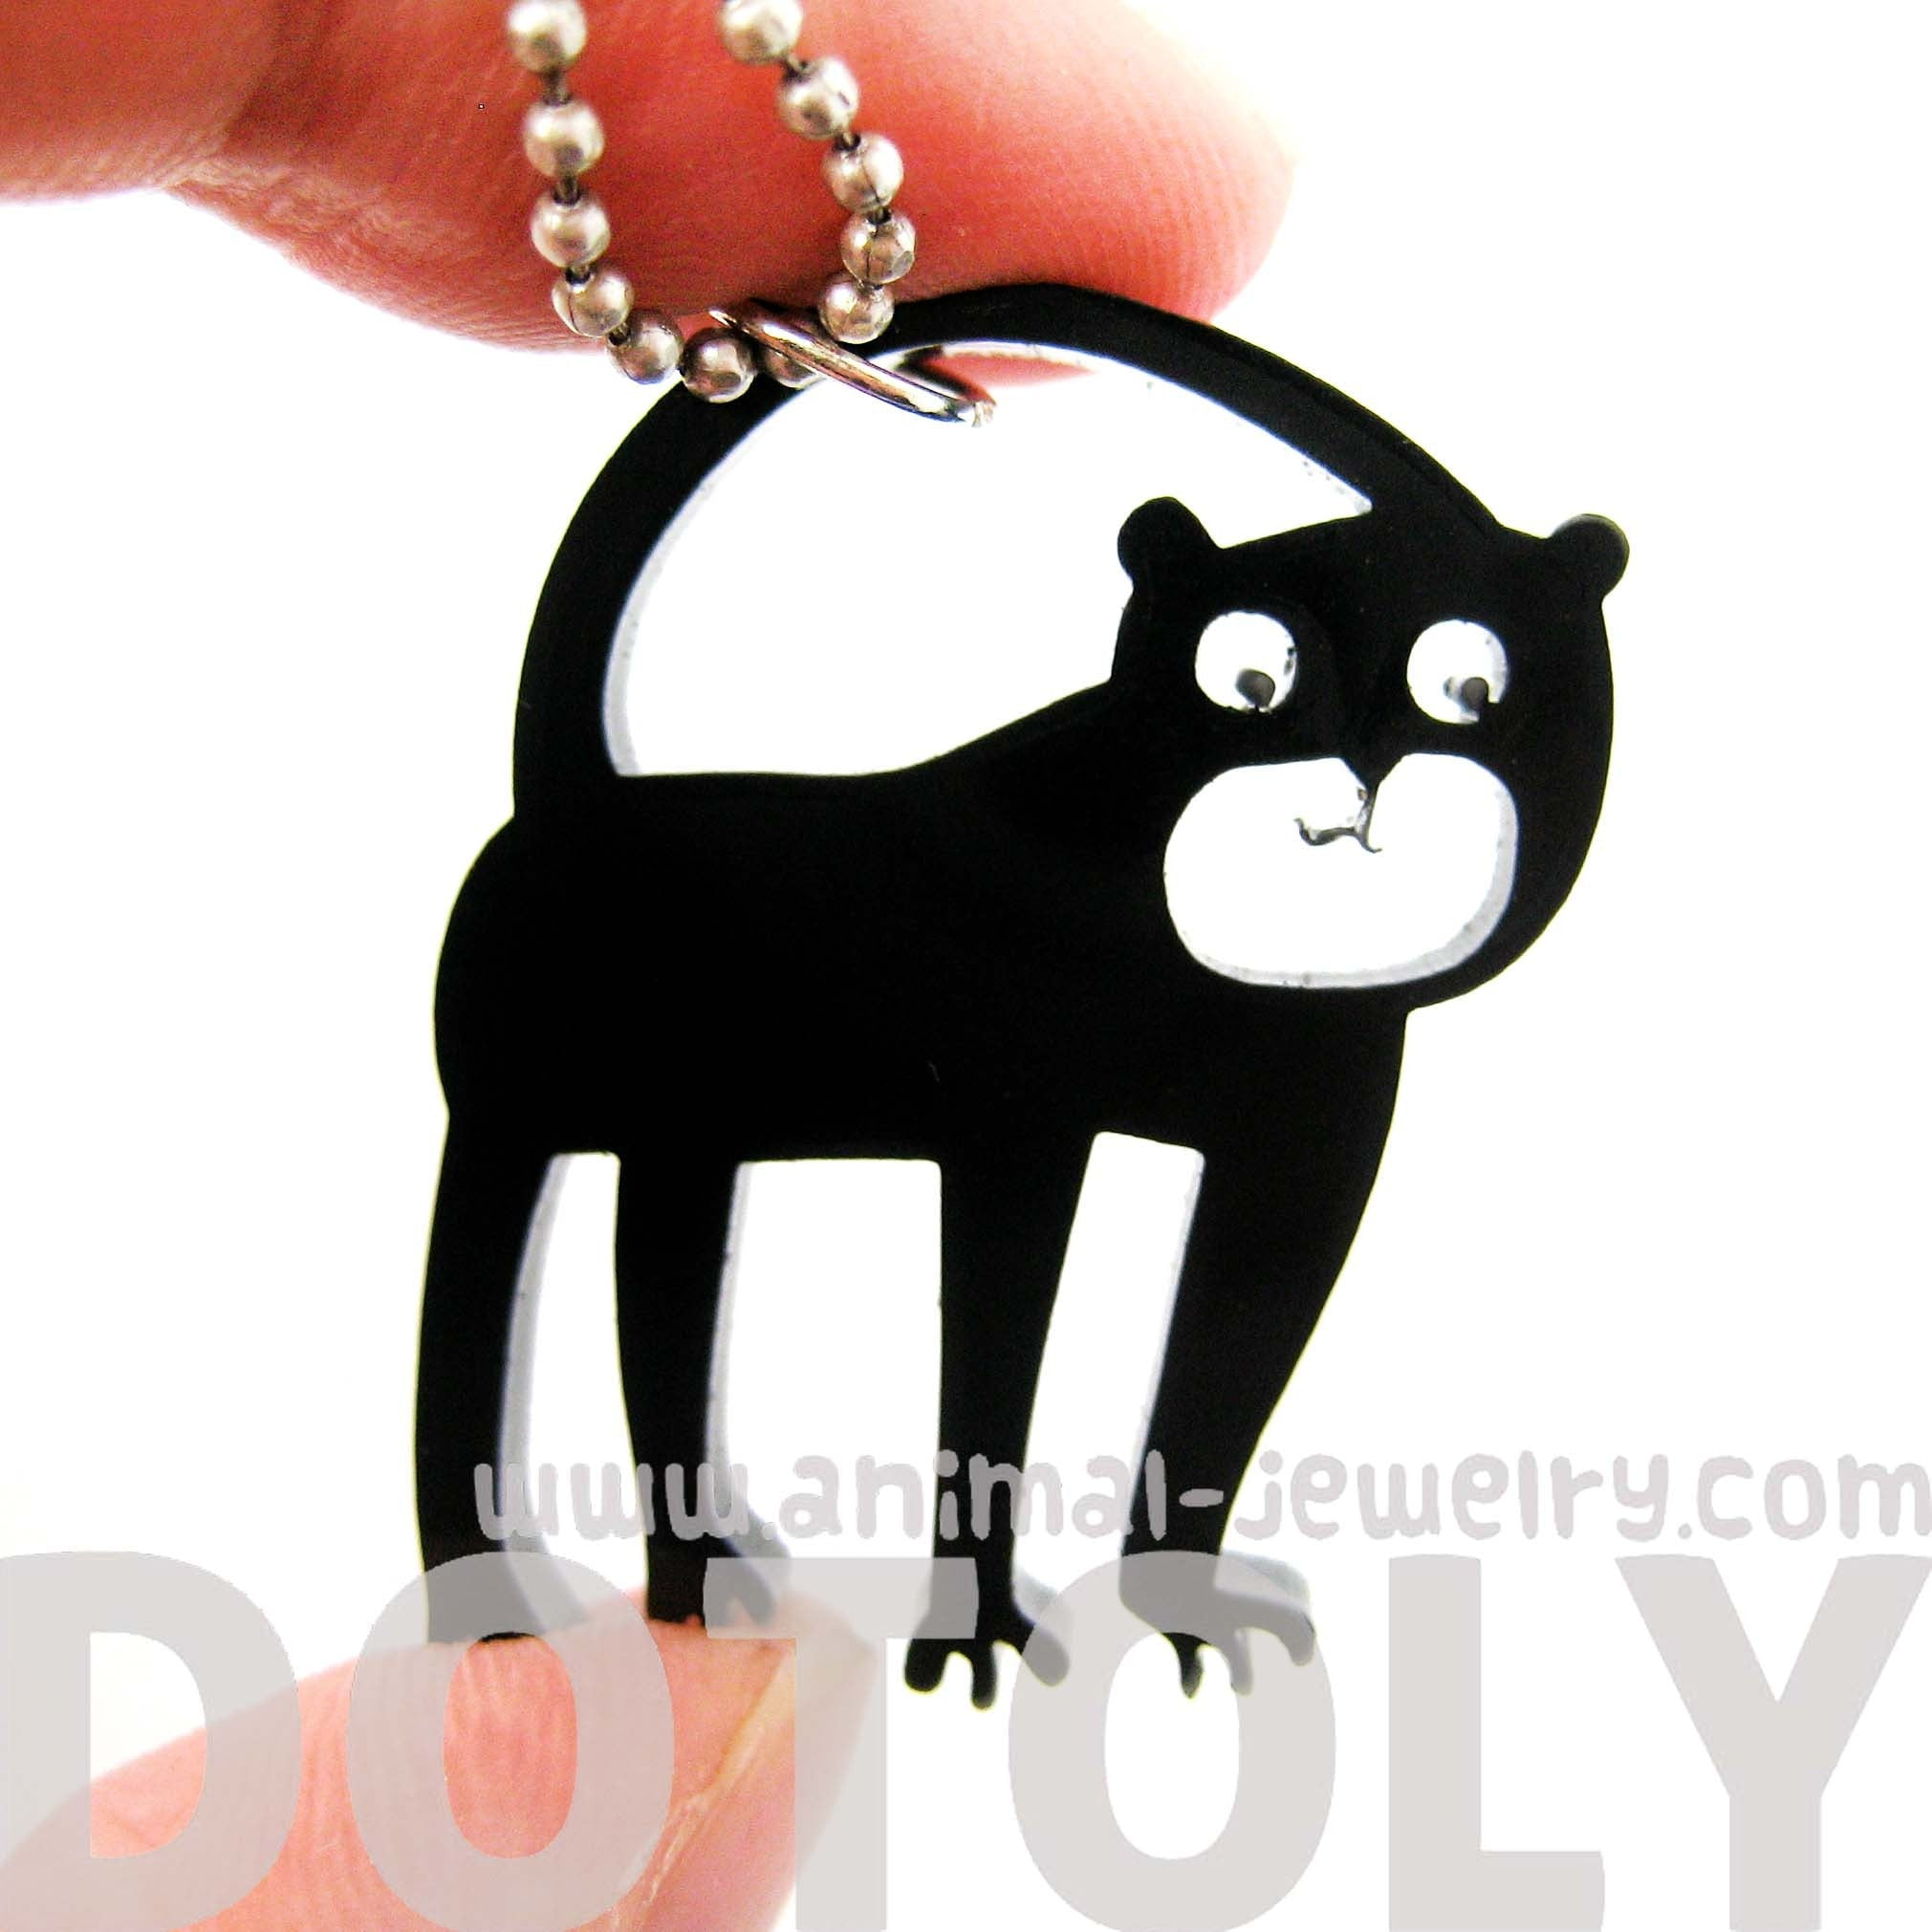 monkey-silhouette-shaped-pendant-necklace-in-black-acrylic-animal-jewelry